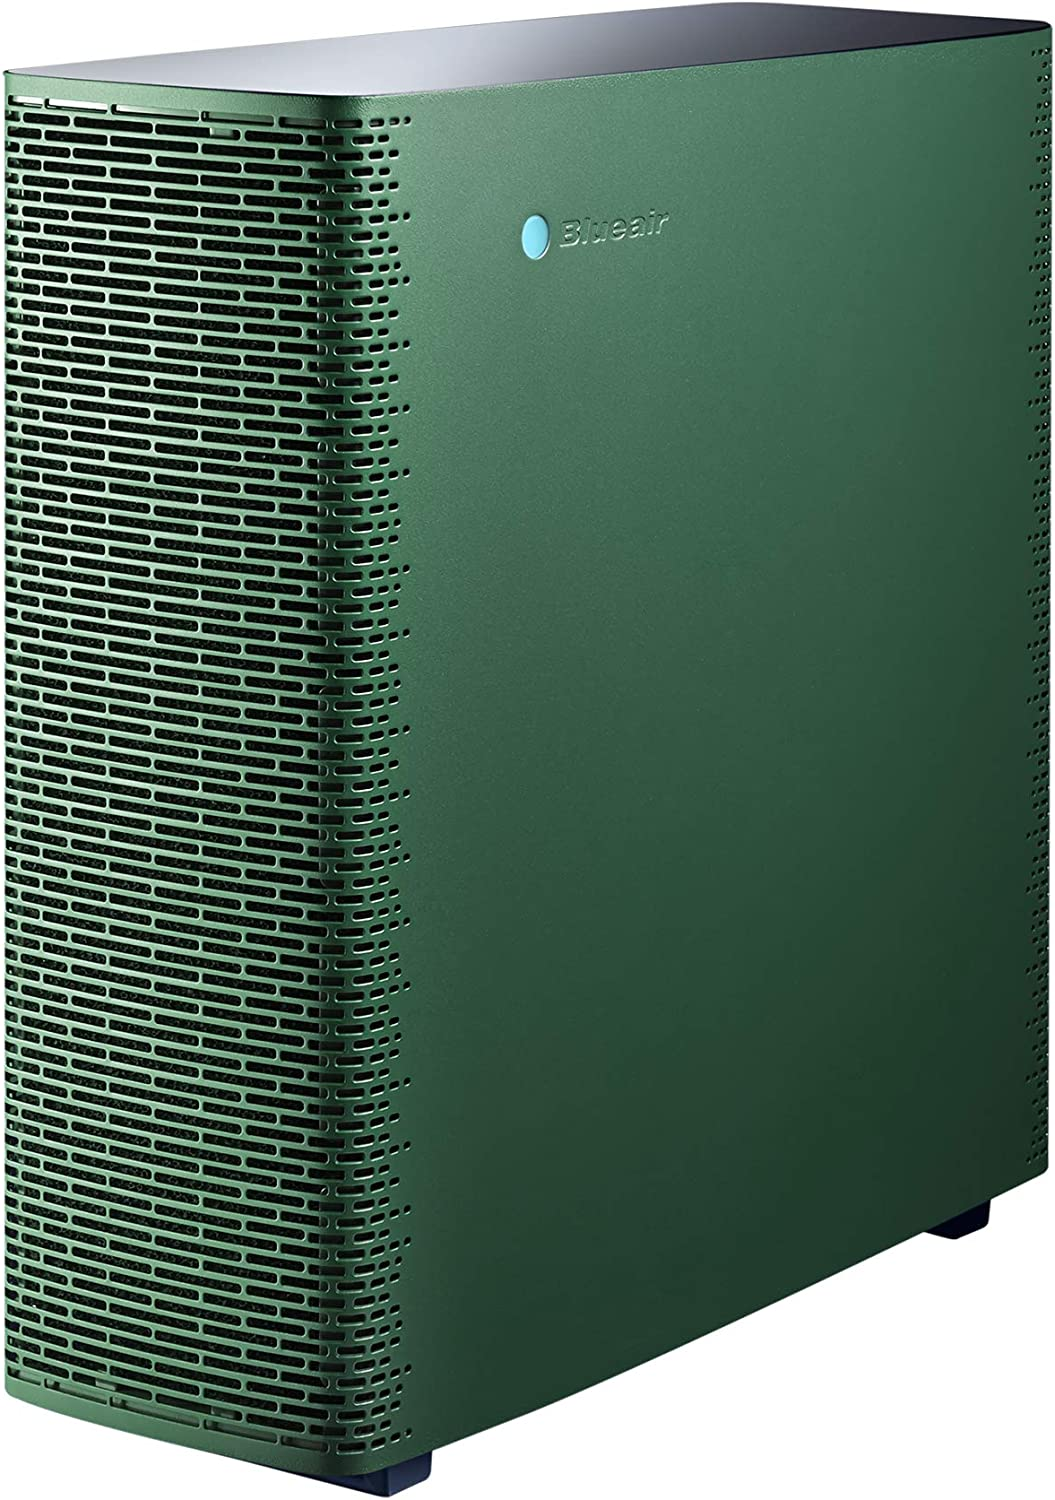 Blueair Sense+ Air Purifier, HEPASilent Technology Particle and Odor Remover, Leaf Green